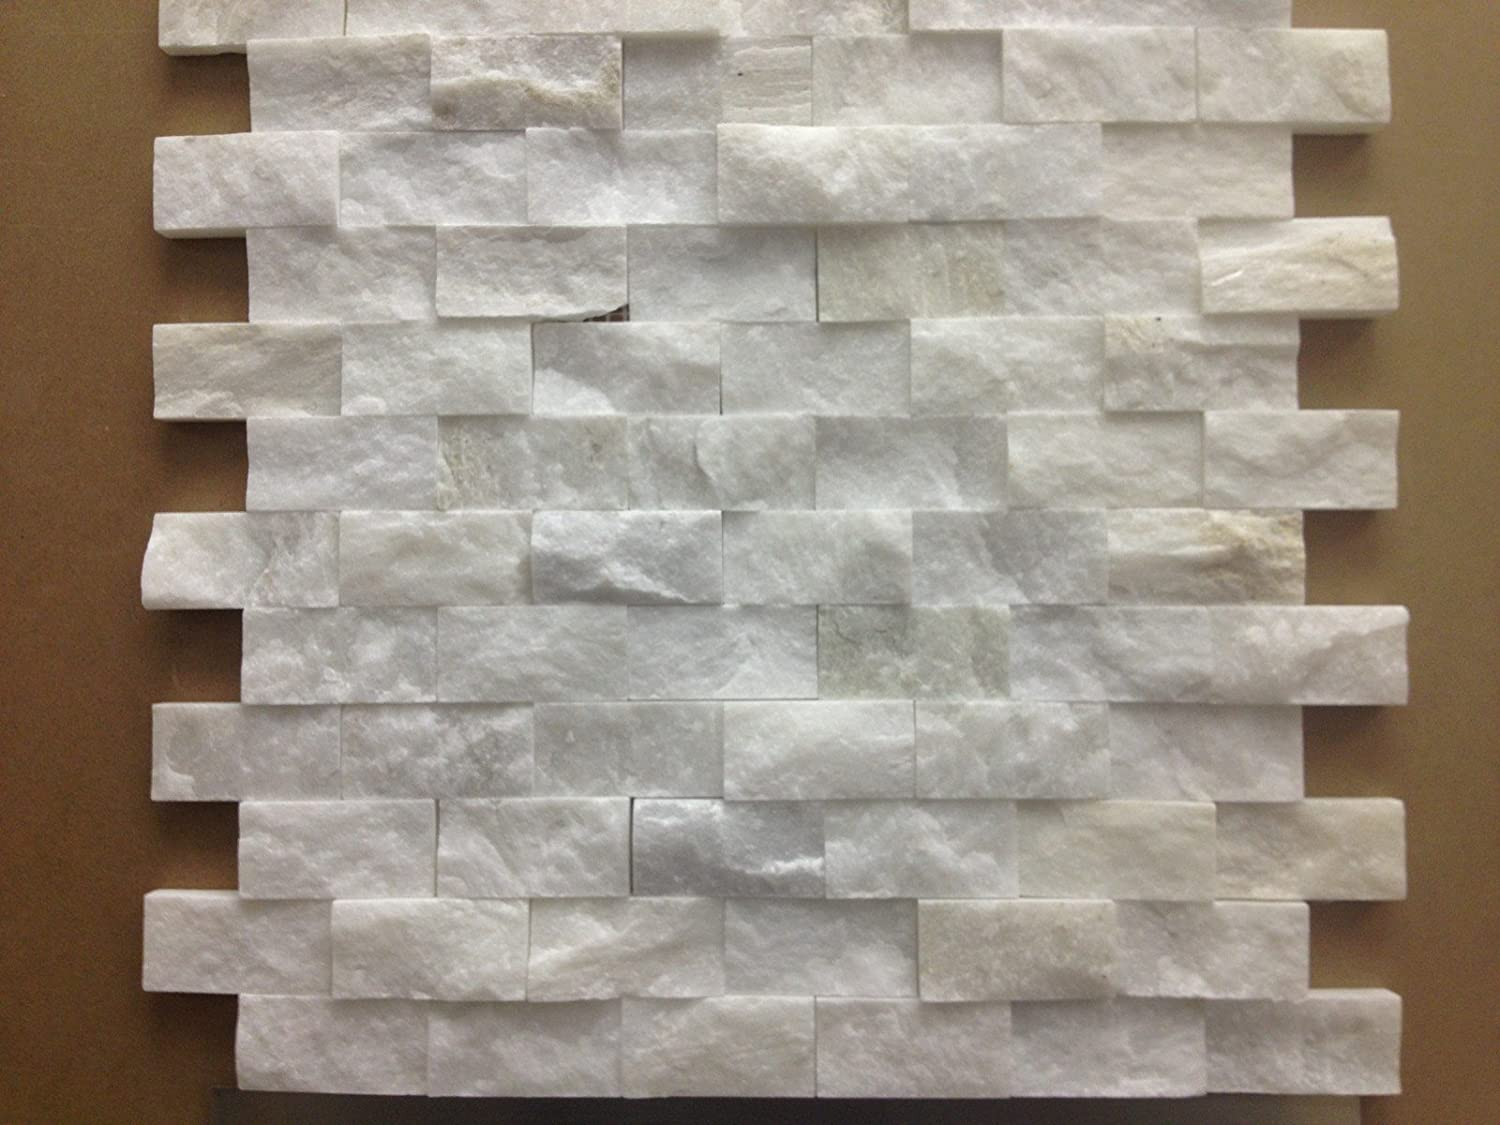 italian white carrara split face 1x2 mosaic tile for kitchen backsplash wall tile marble tiles amazoncom - Mosaic Tiles